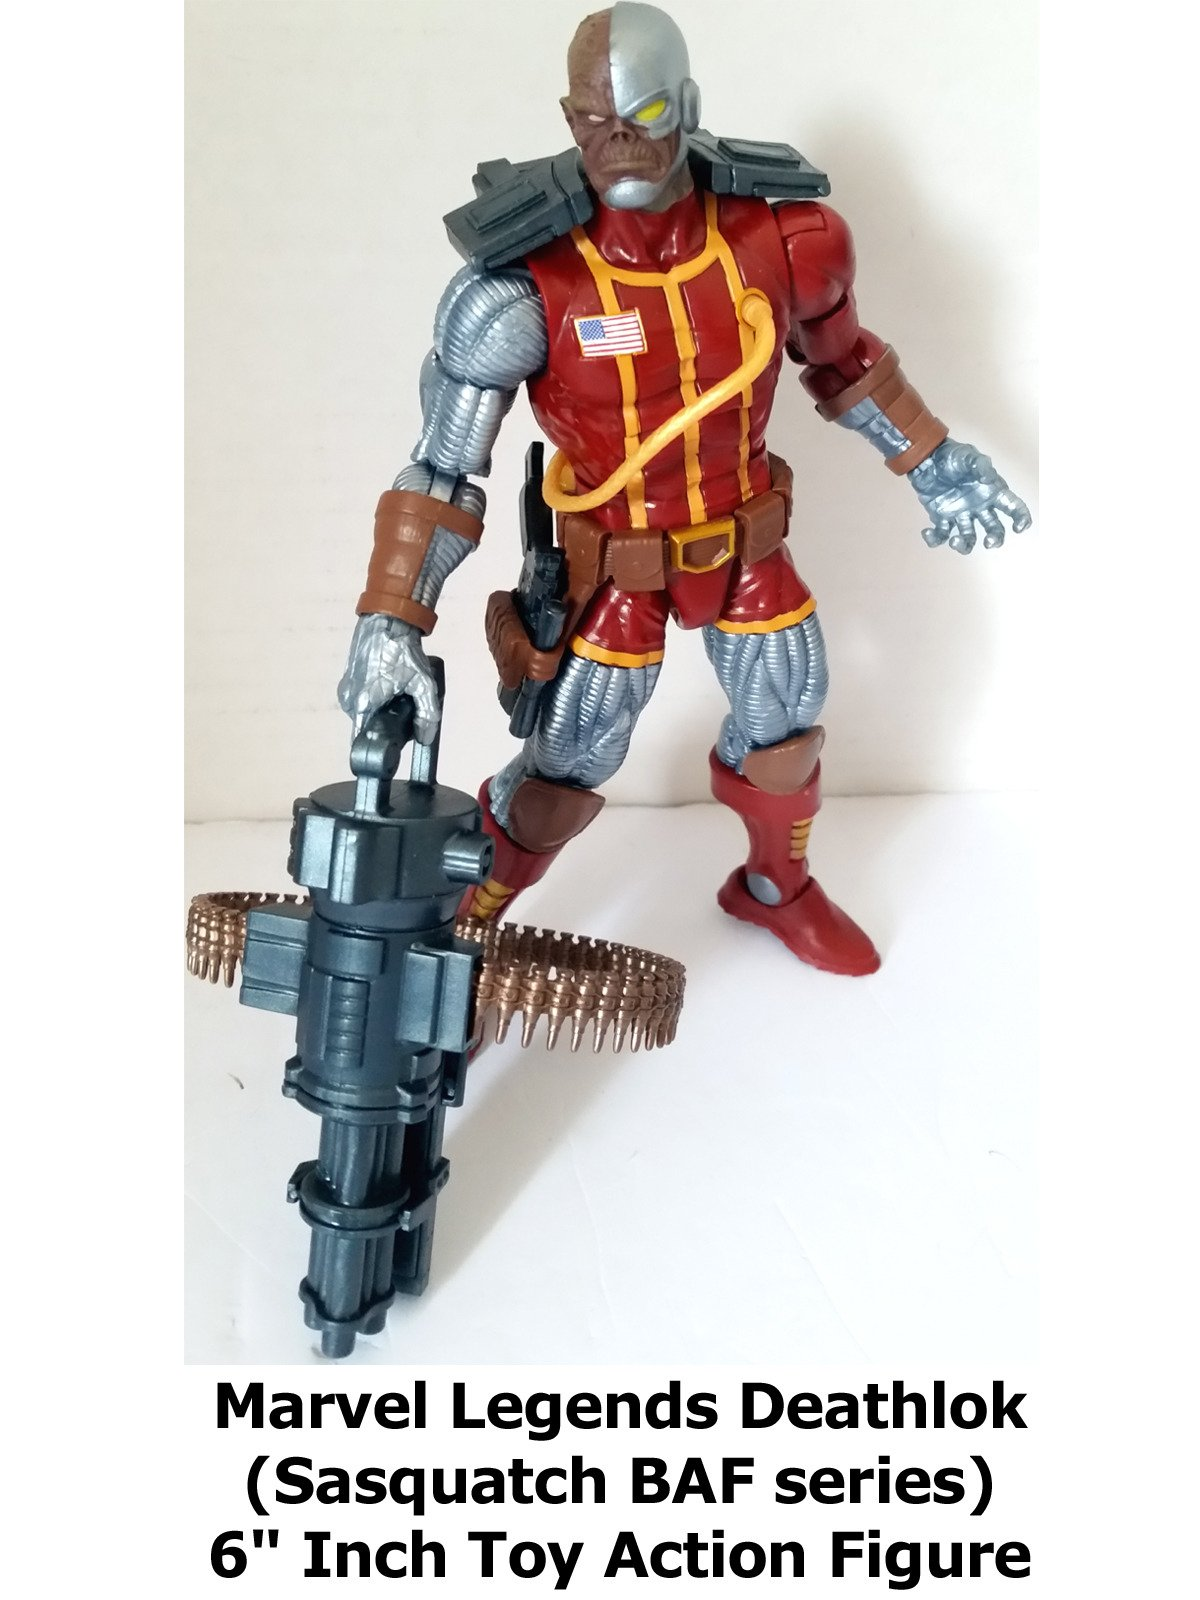 "Review: Marvel Legends Deathlok (Sasquatch BAF series) 6"" Inch Toy Action Figure"